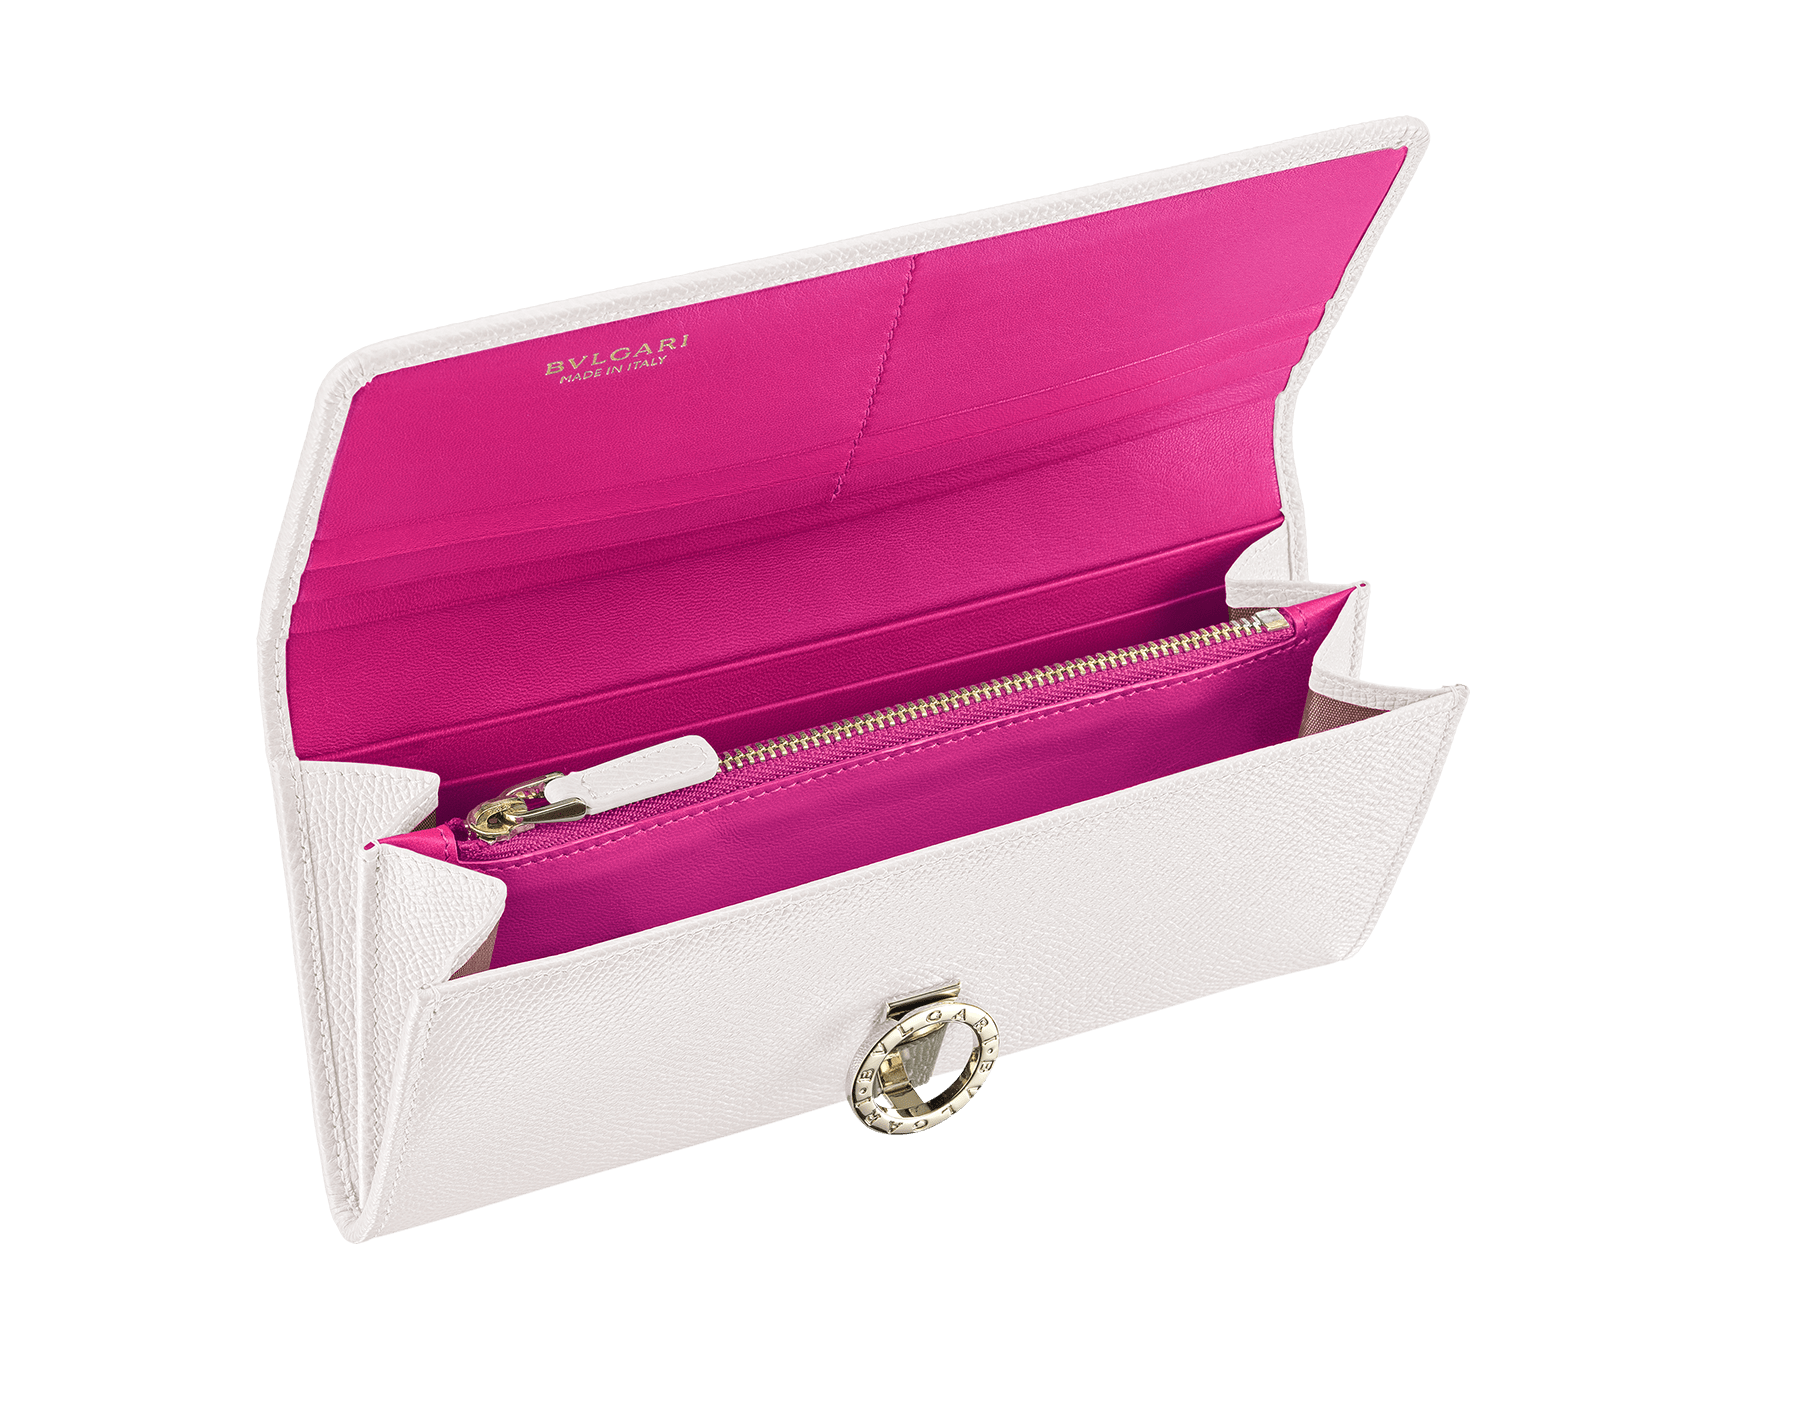 """BVLGARI BVLGARI"" large wallet in Lavender Amethyst lilac bright grained calf leather and peach nappa leather. Iconic logo clip closure in light gold-plated brass. 579-WLT-SLI-POC-CLd image 2"